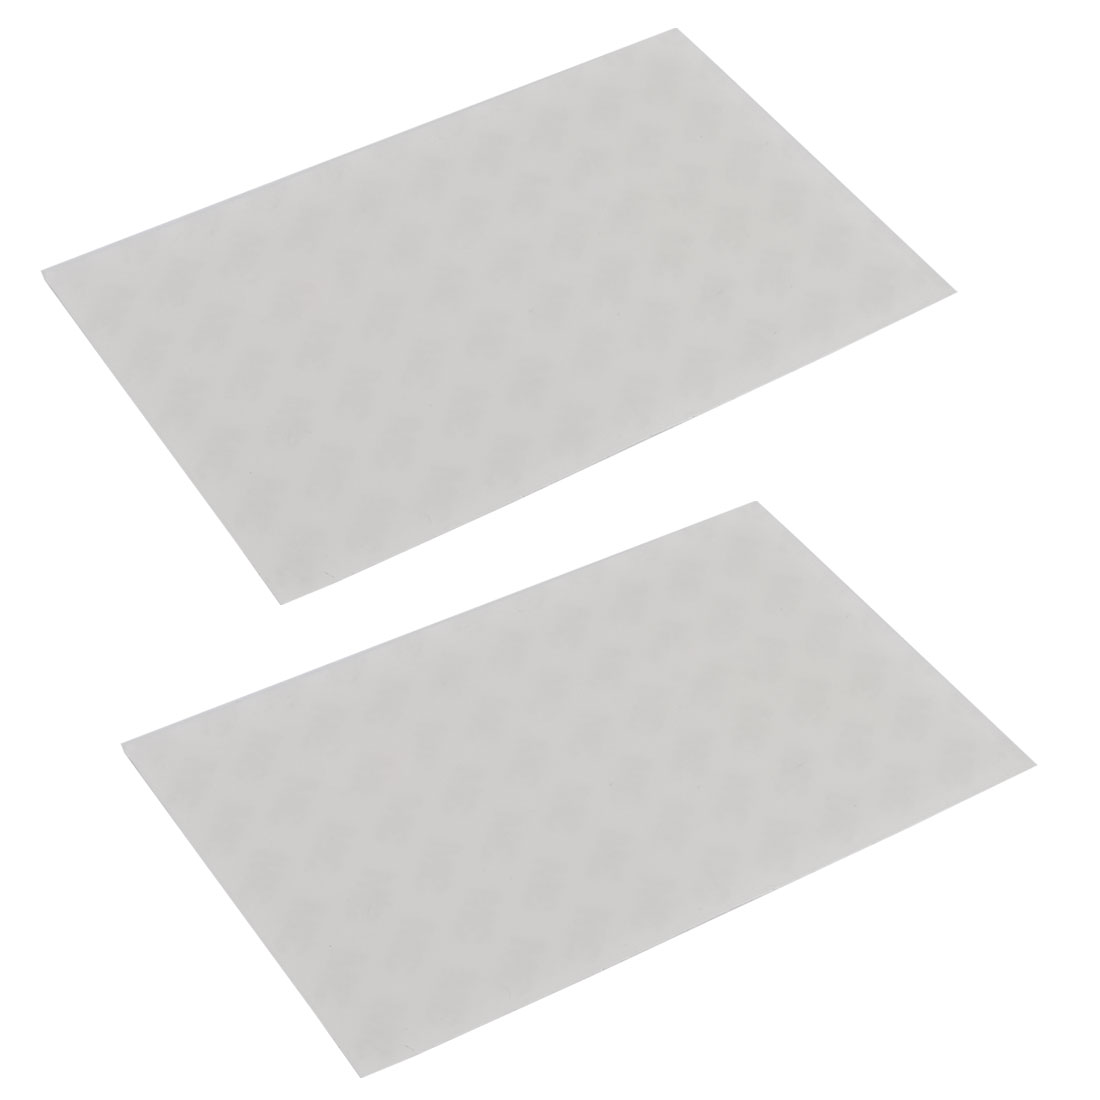 Silicone Self-adhesive Furniture Nonslip Protector Pad Clear White 2 Pcs